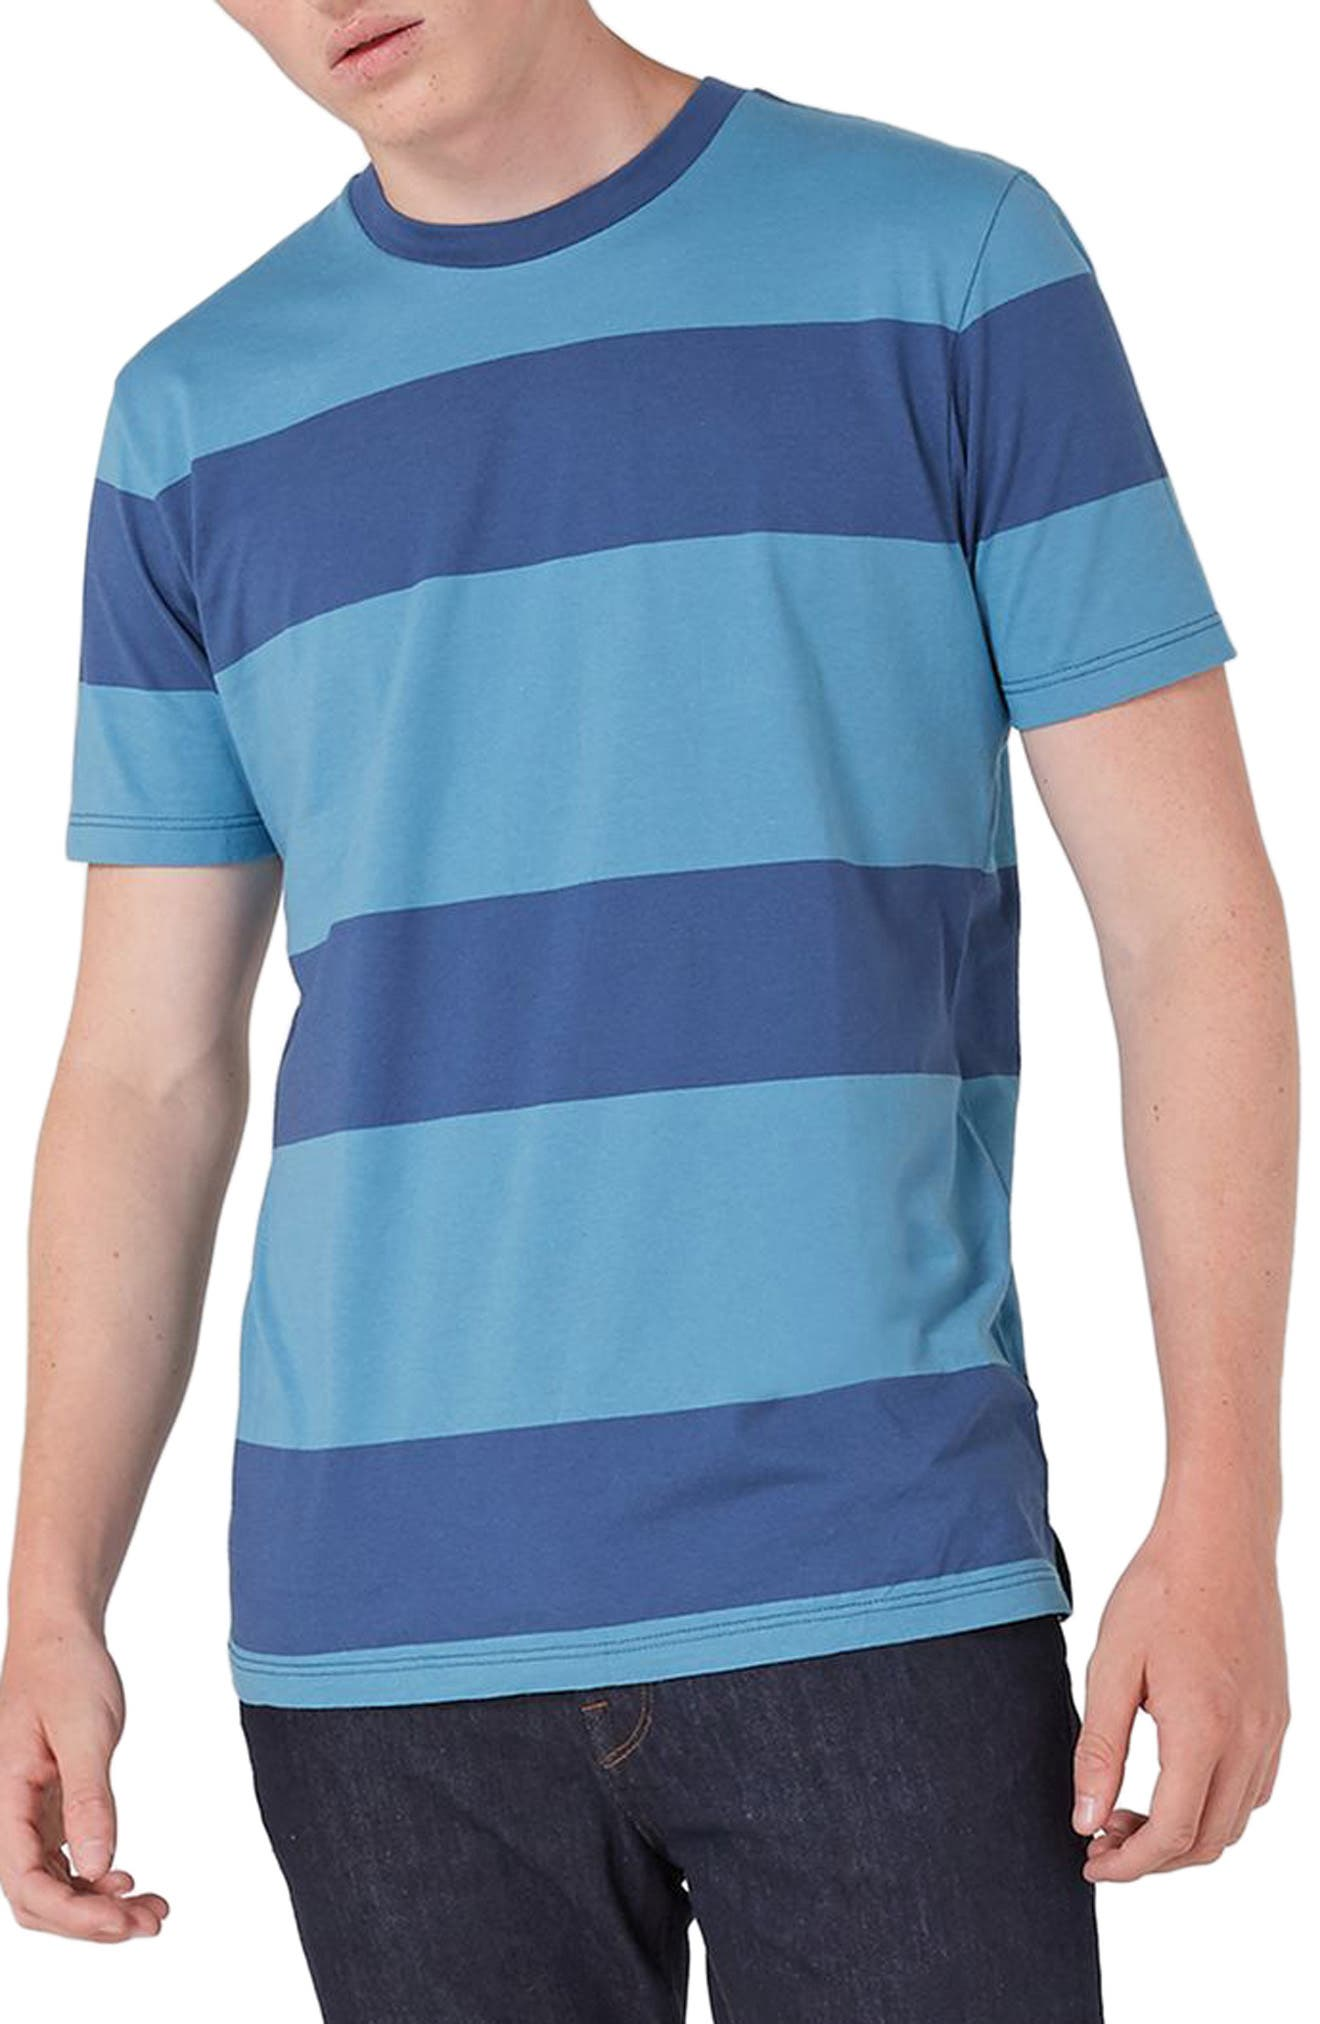 Alternate Image 1 Selected - Topman Stripe T-Shirt